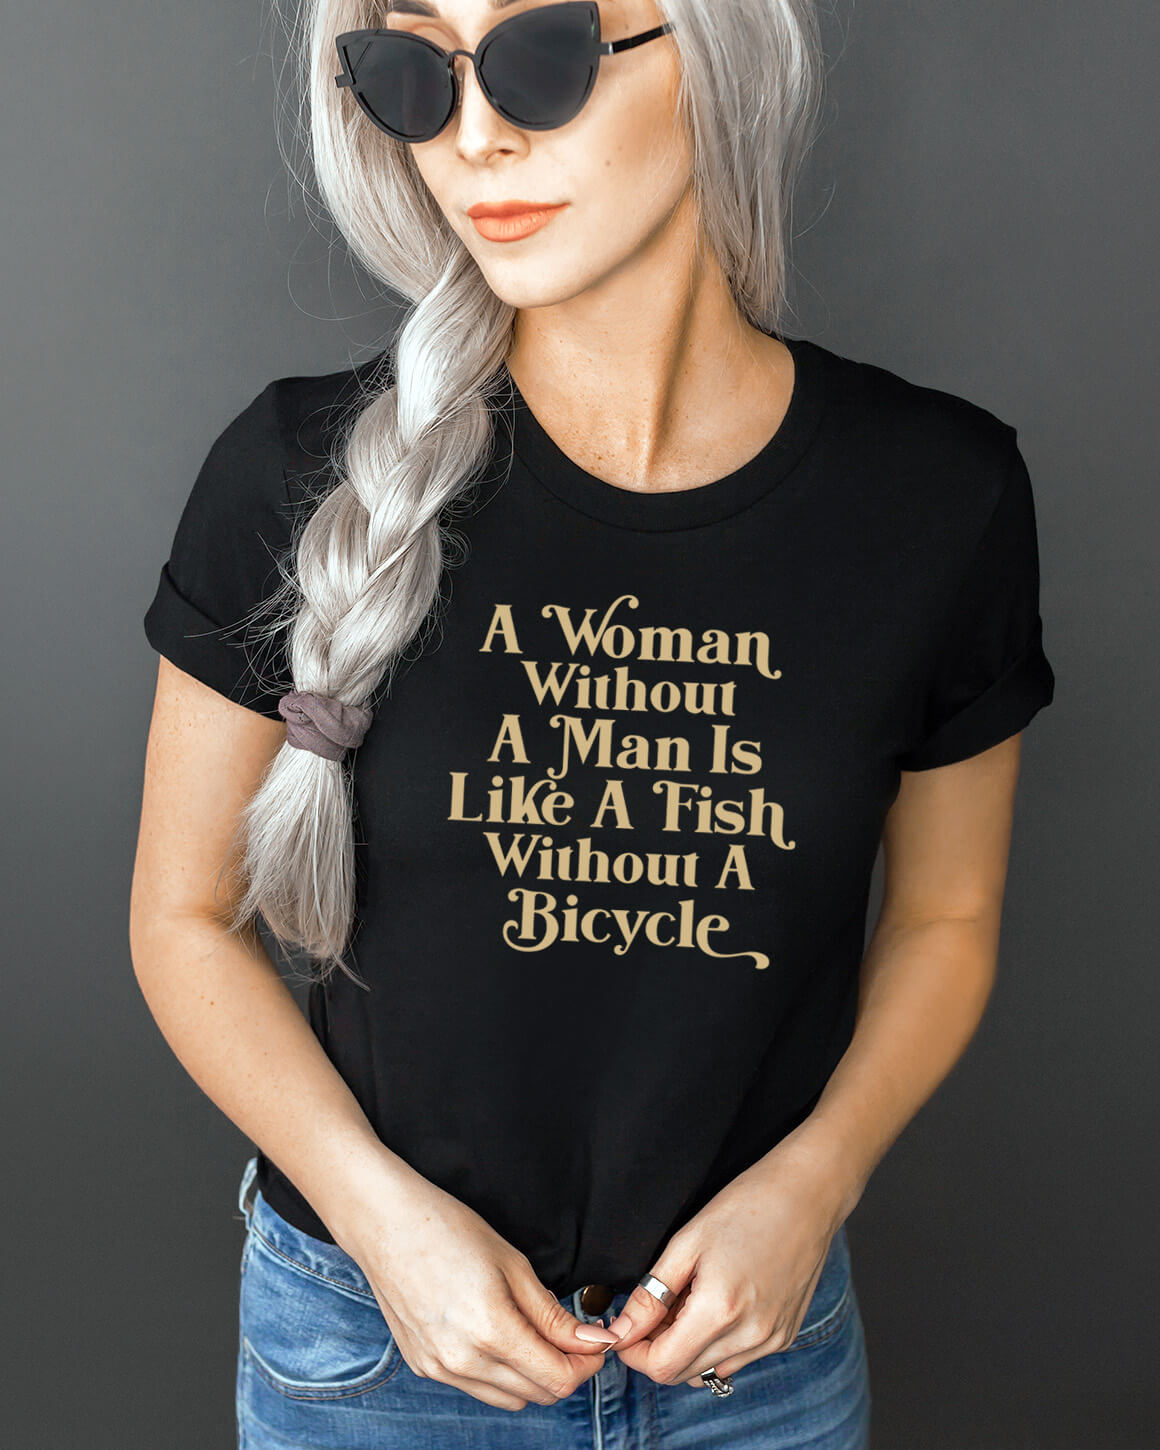 Women in black sunglasses and jeans wearing a funny feminist t-shirt